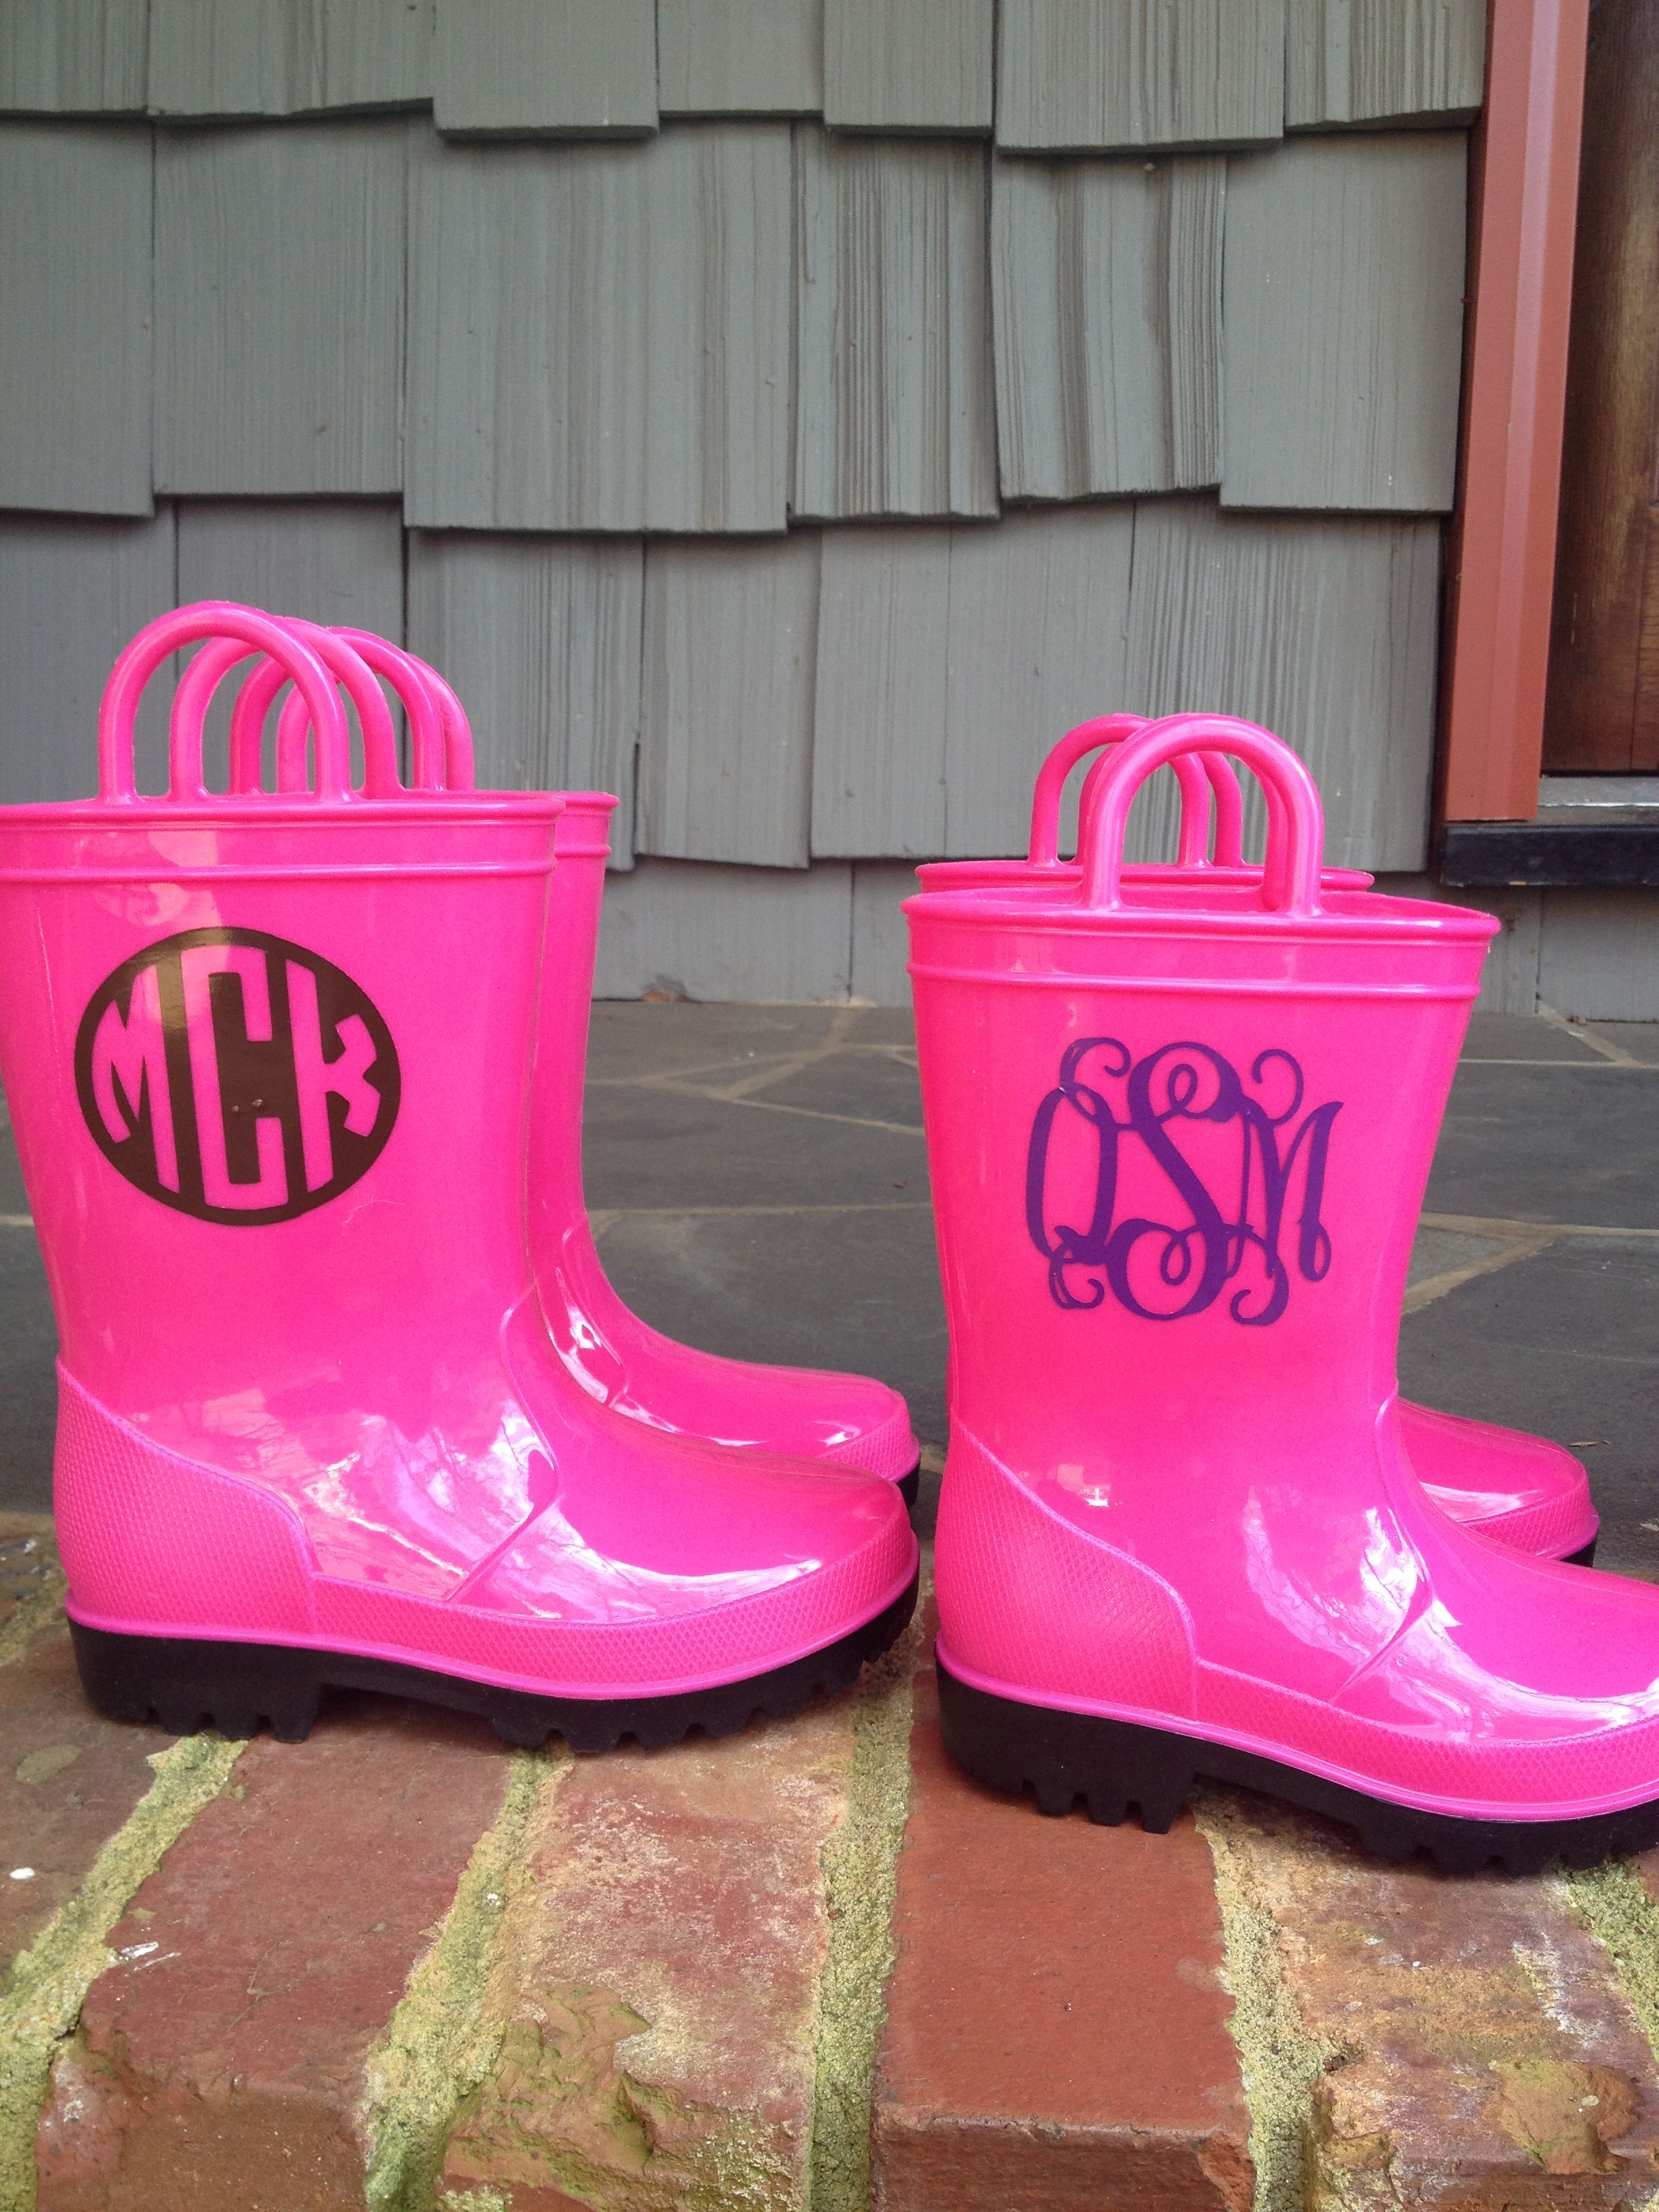 Adorable Monogrammed Rain Boots 28 Toddler Sizes 6 12 And Girls 13 6 Www Jenniefromtheblocks Com Or Jen Toddler Rain Boots Girls Rain Boots Kids Rain Boots